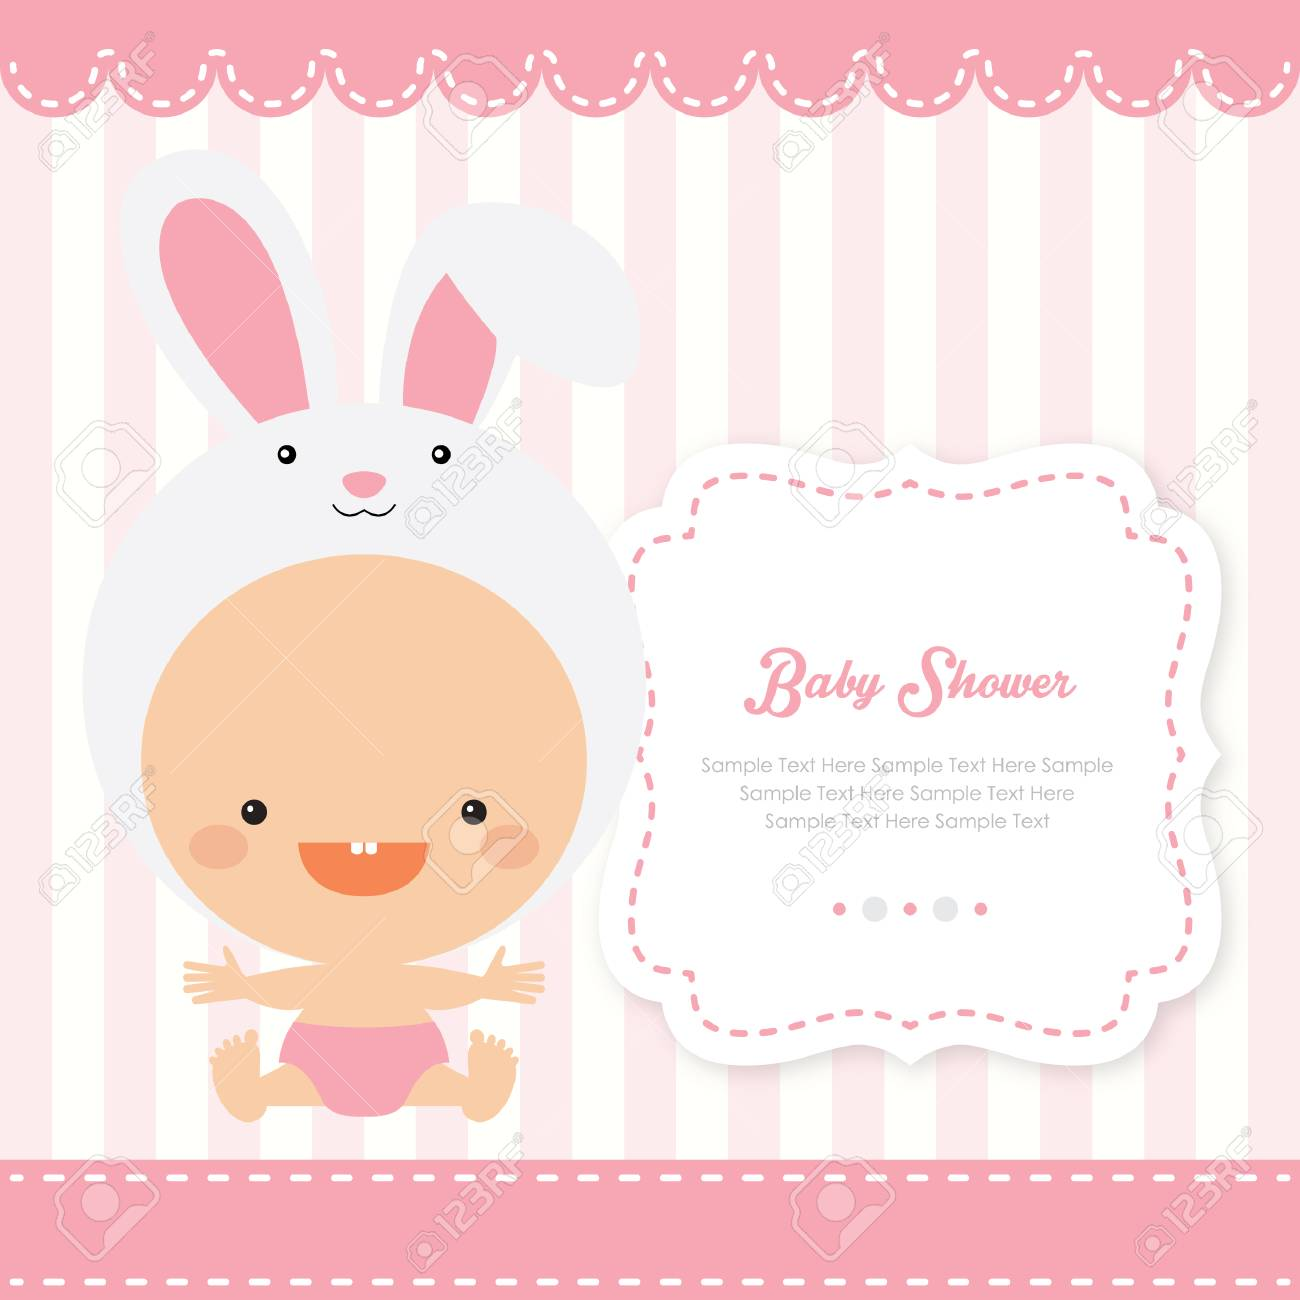 Bunny Baby Shower Royalty Free Cliparts Vectors And Stock